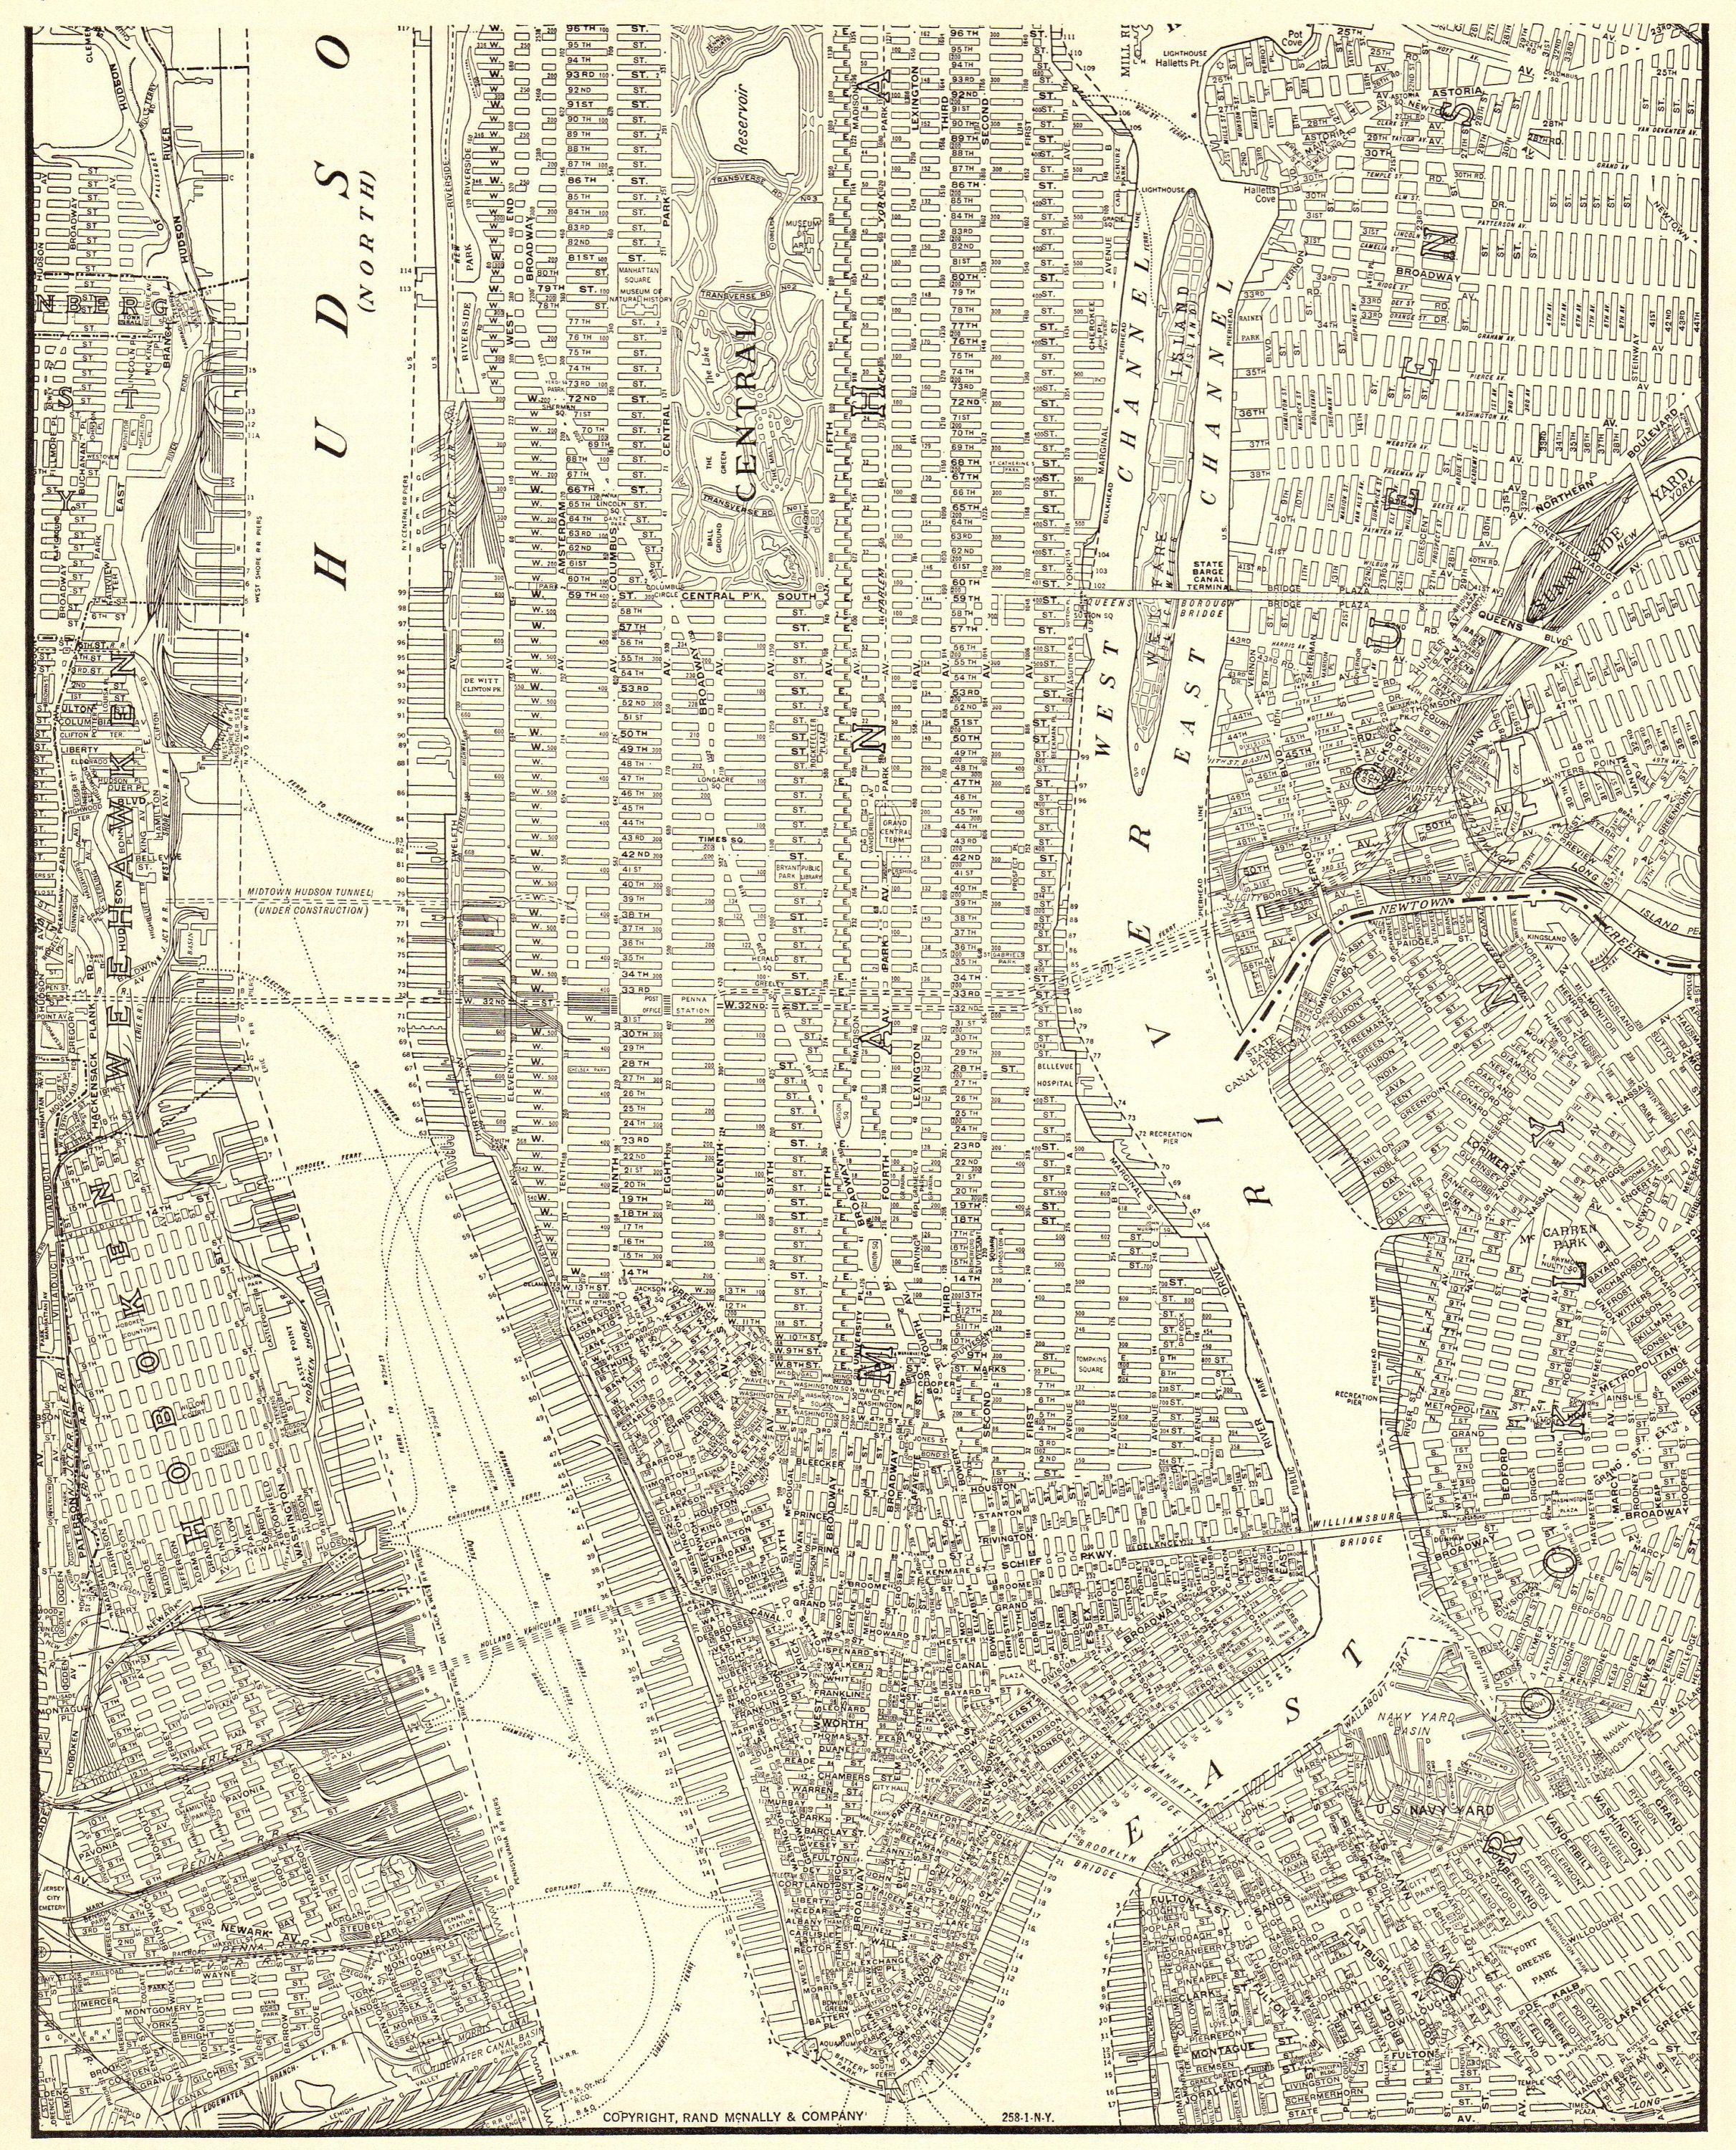 1937 Antique Map Of Manhattan Map Vintage New York City Map Modern Decor Black And White Gallery Wall Art Annivers Manhattan Map New York City Map Map Wall Art